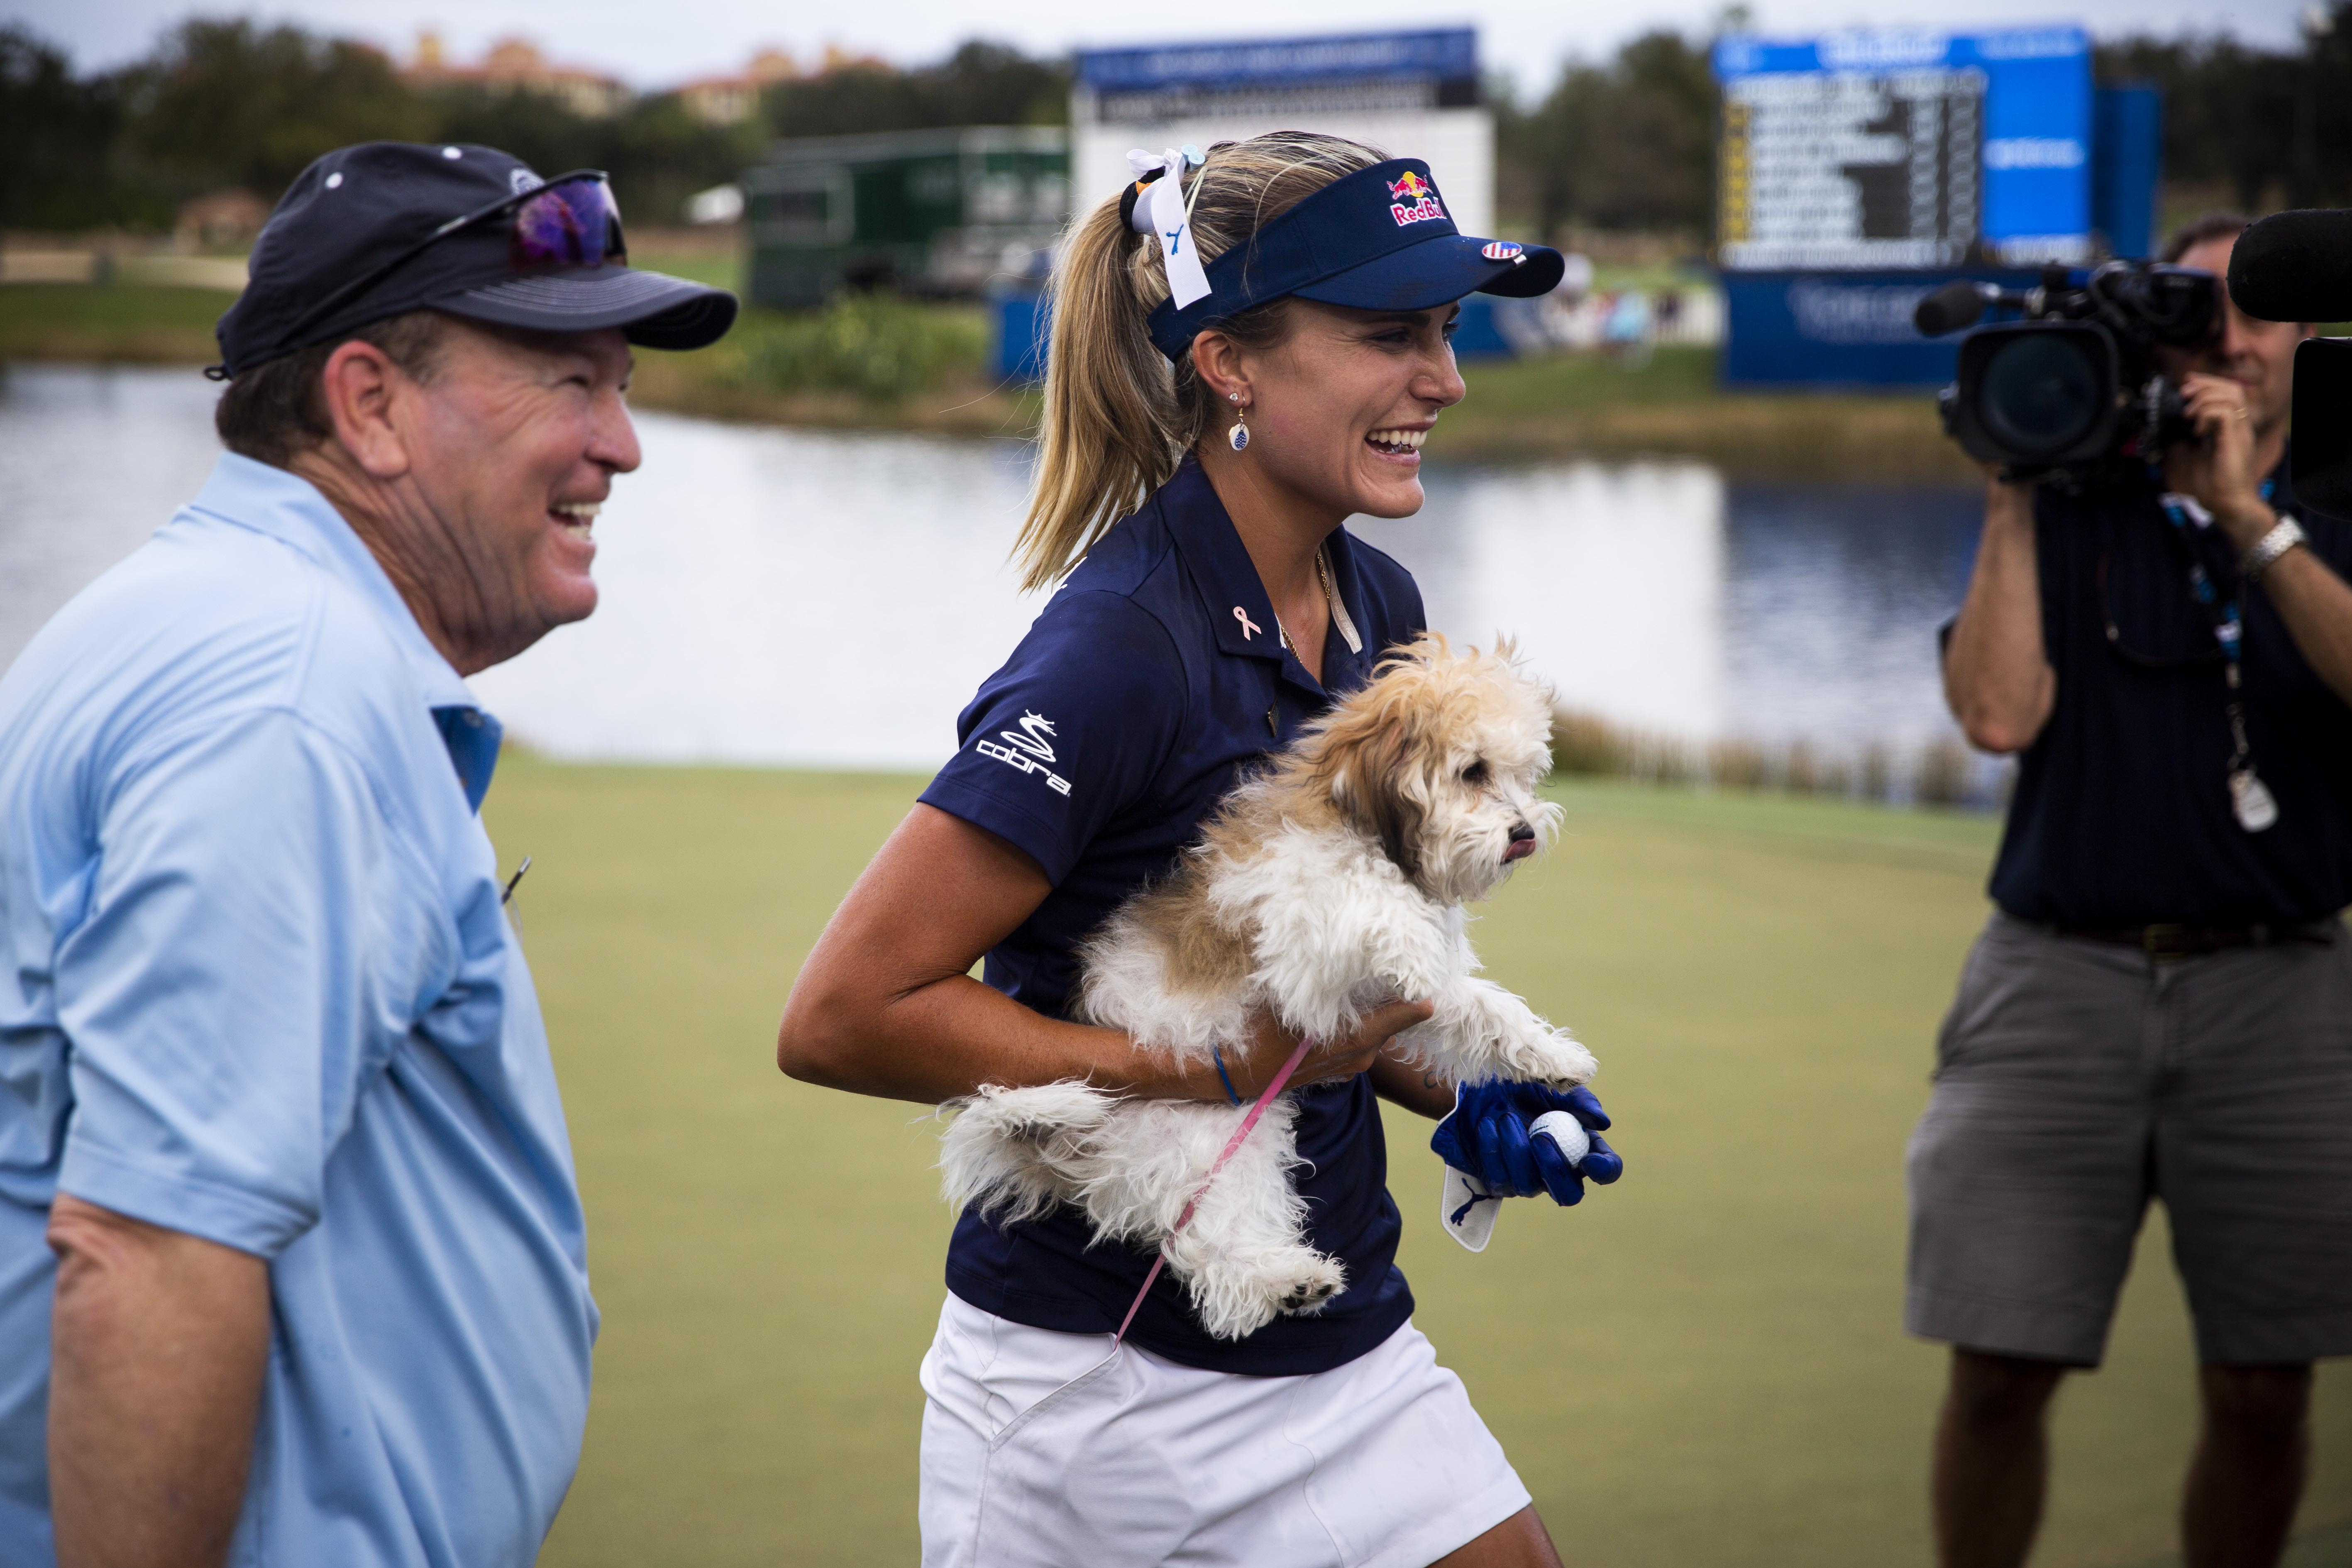 November 18, 2018; Naples, FL, USA; Lexi Thompson carries her dog Leo after winning the CME Group Tour Championship, the final event of the LPGA Tour, on Sunday, November 18, 2018, at Tiburon Golf Club in Naples. Mandatory Credit: Alex Driehaus/Naples Daily News via USA TODAY NETWORK